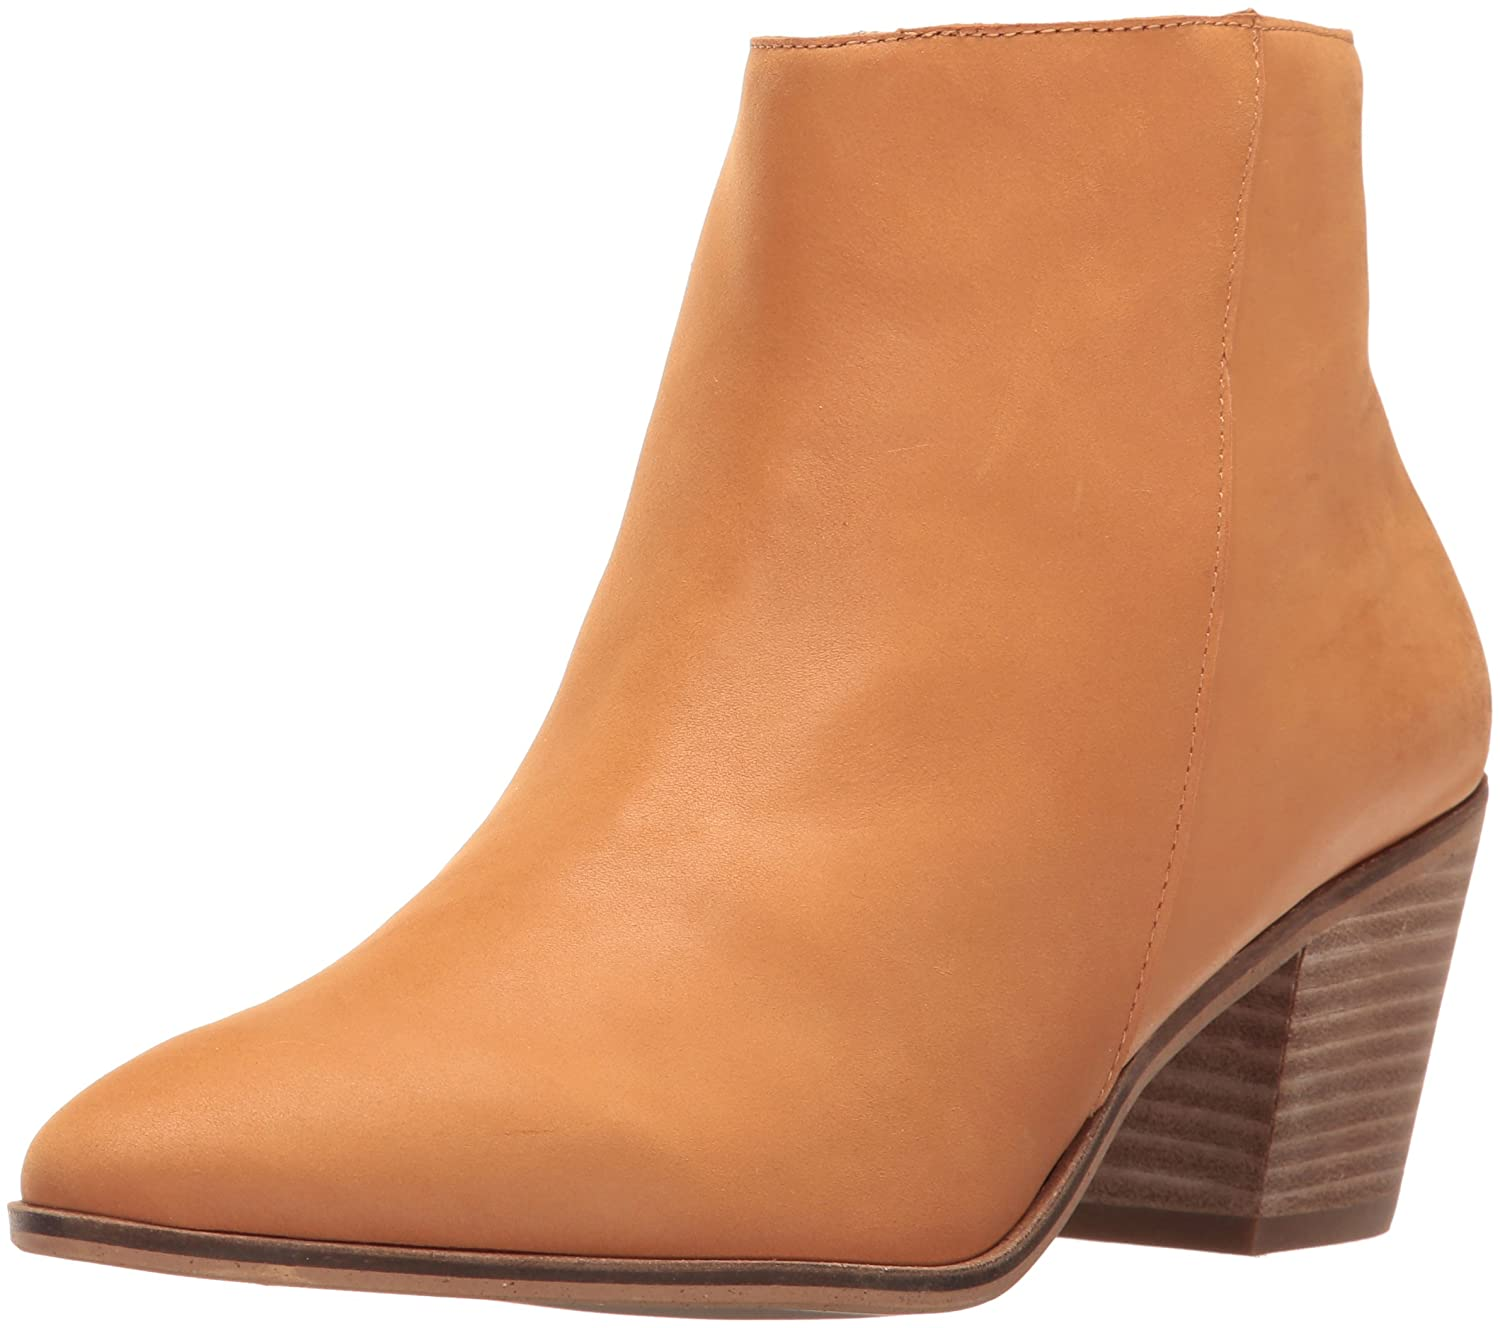 Lucky Brand Women's linnea3 Ankle Bootie B01LY6H4CV 6 B(M) US|Cafe